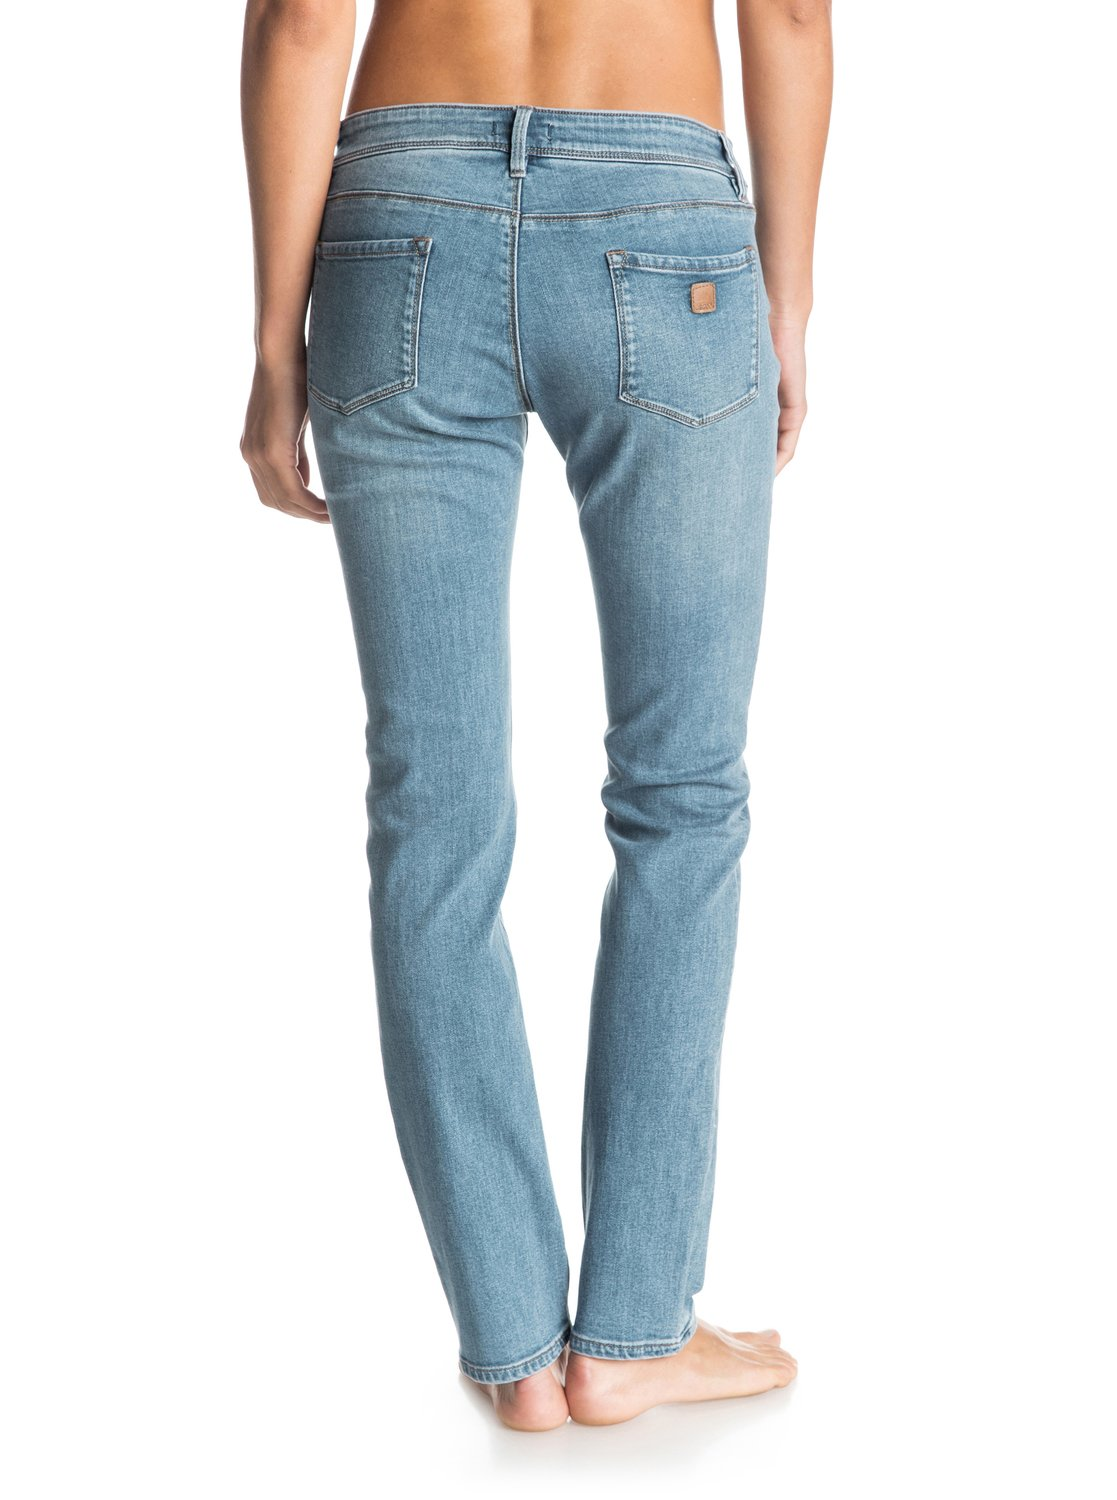 Free shipping and returns on Men's Vintage Jeans & Denim at janydo.ml